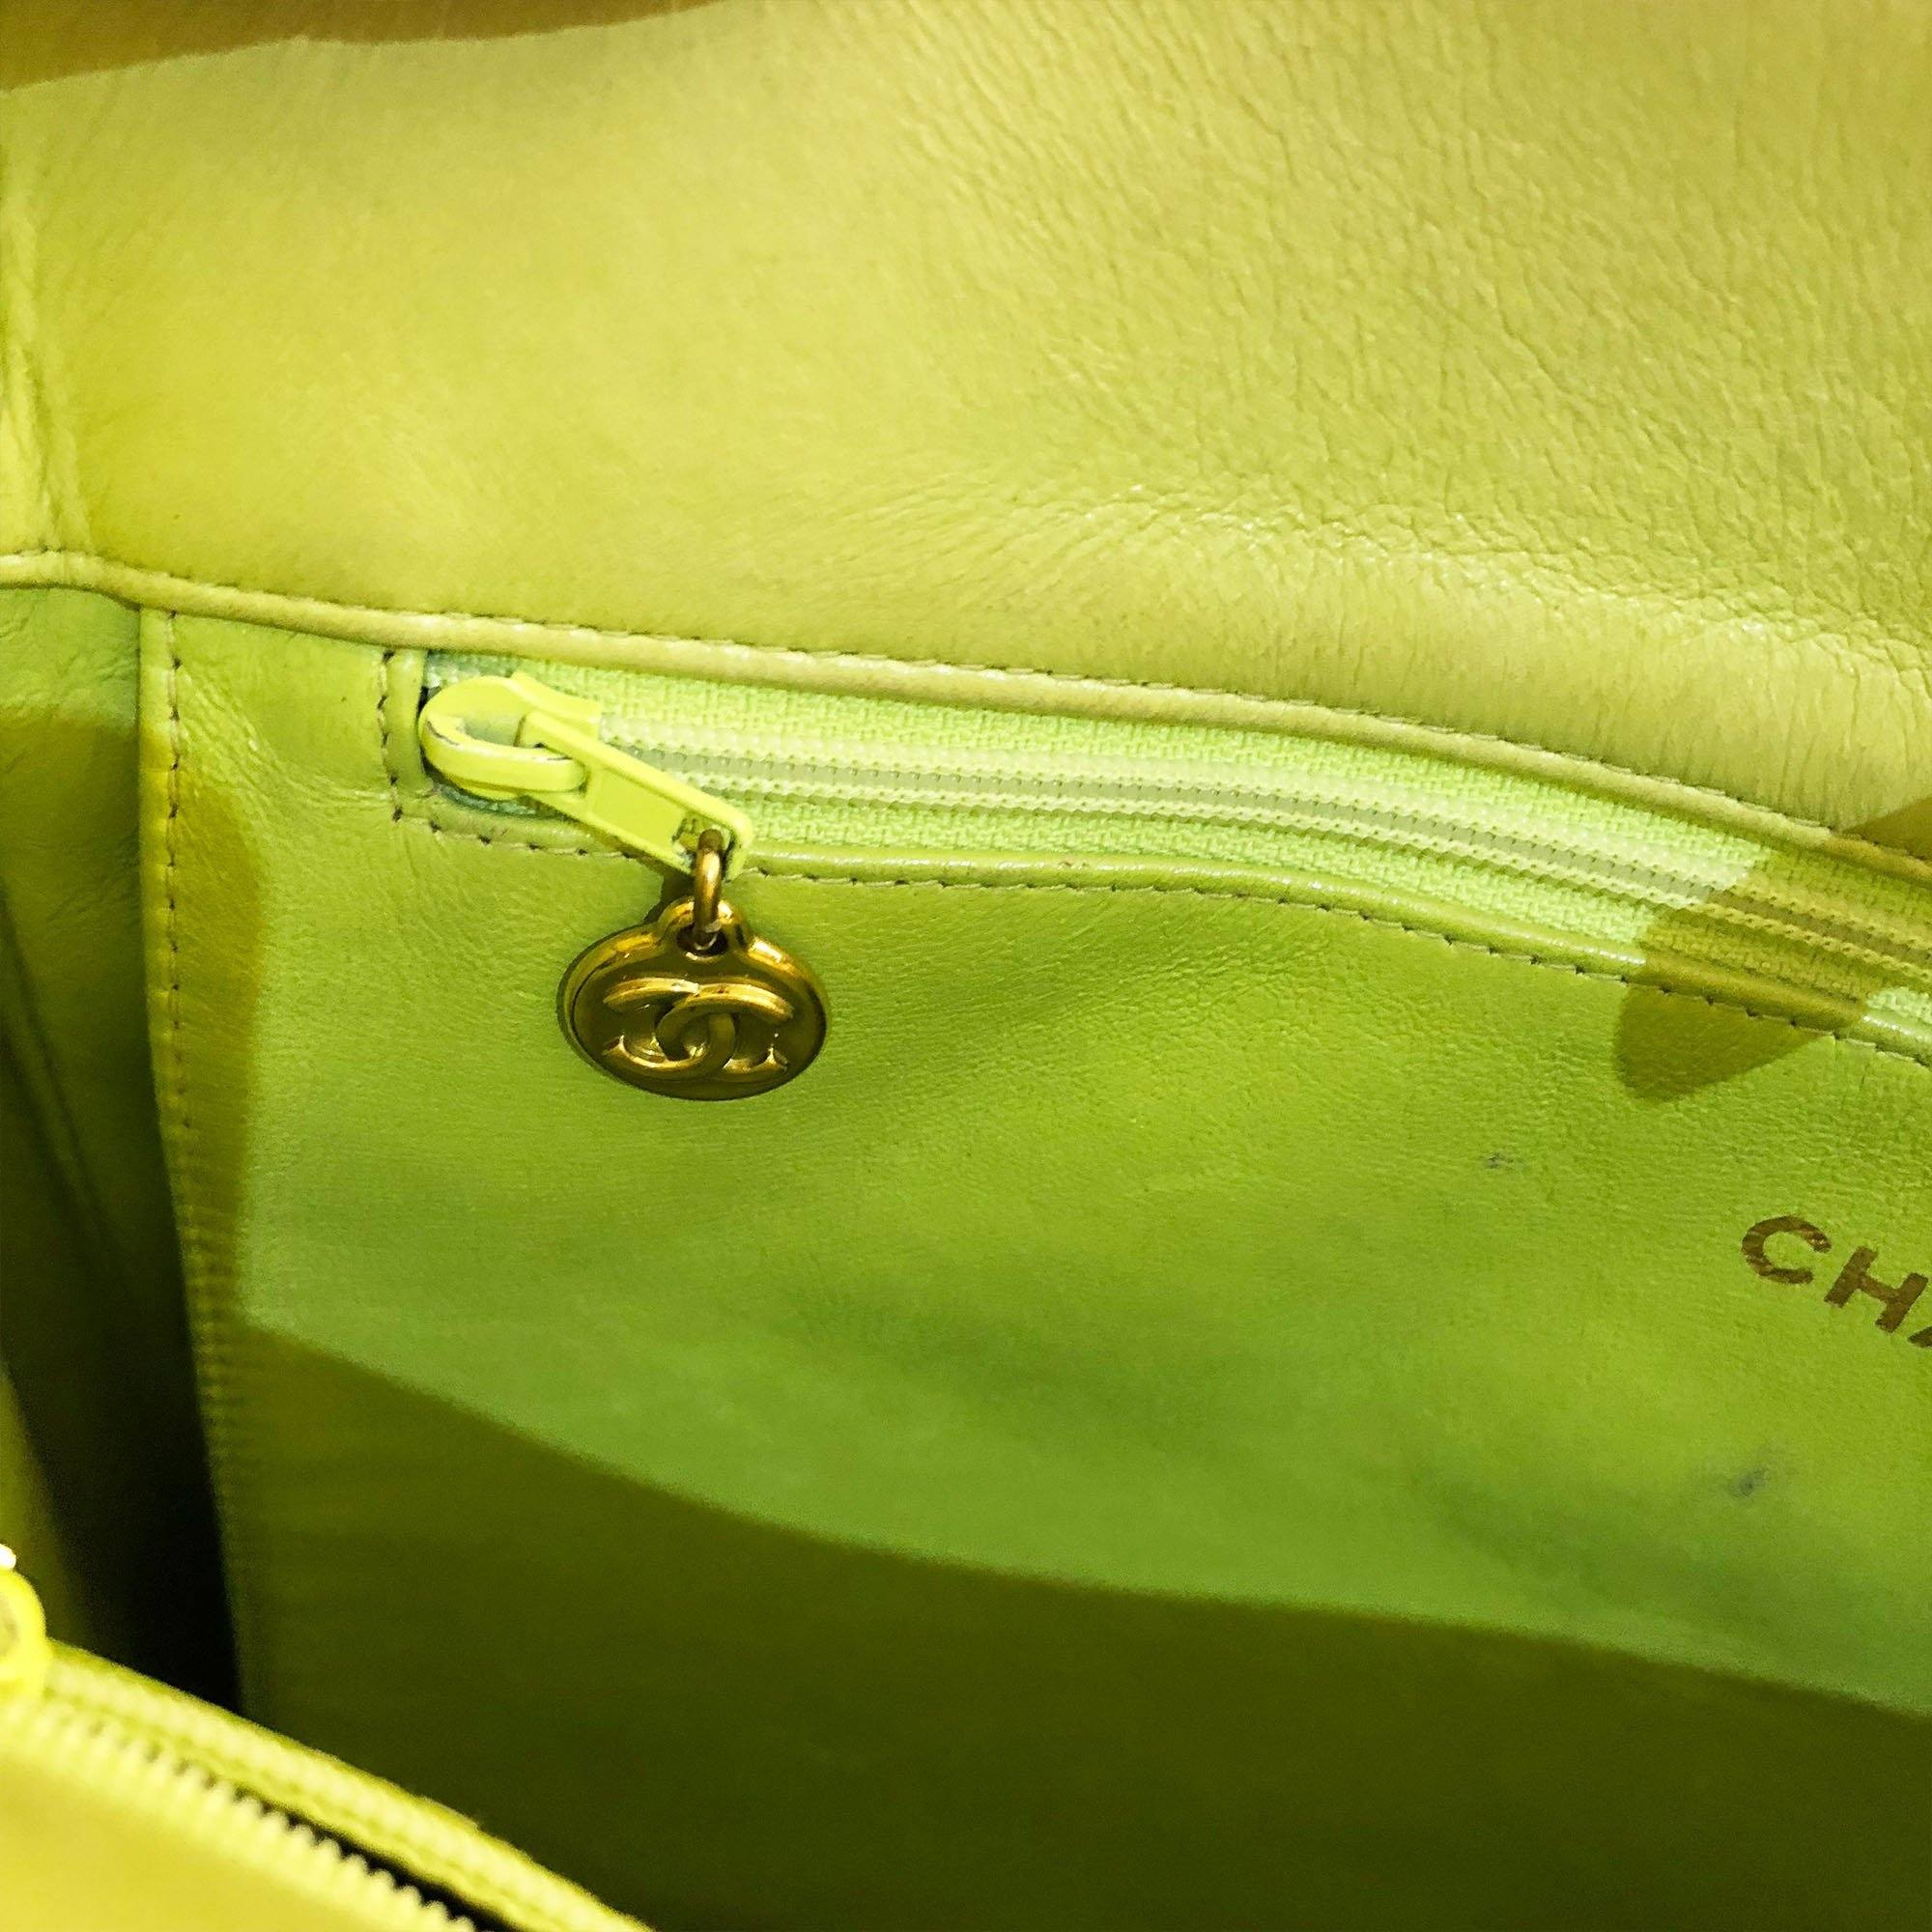 Chanel Vintage Caviar Leather Yellow/Lime Green Tote Bag